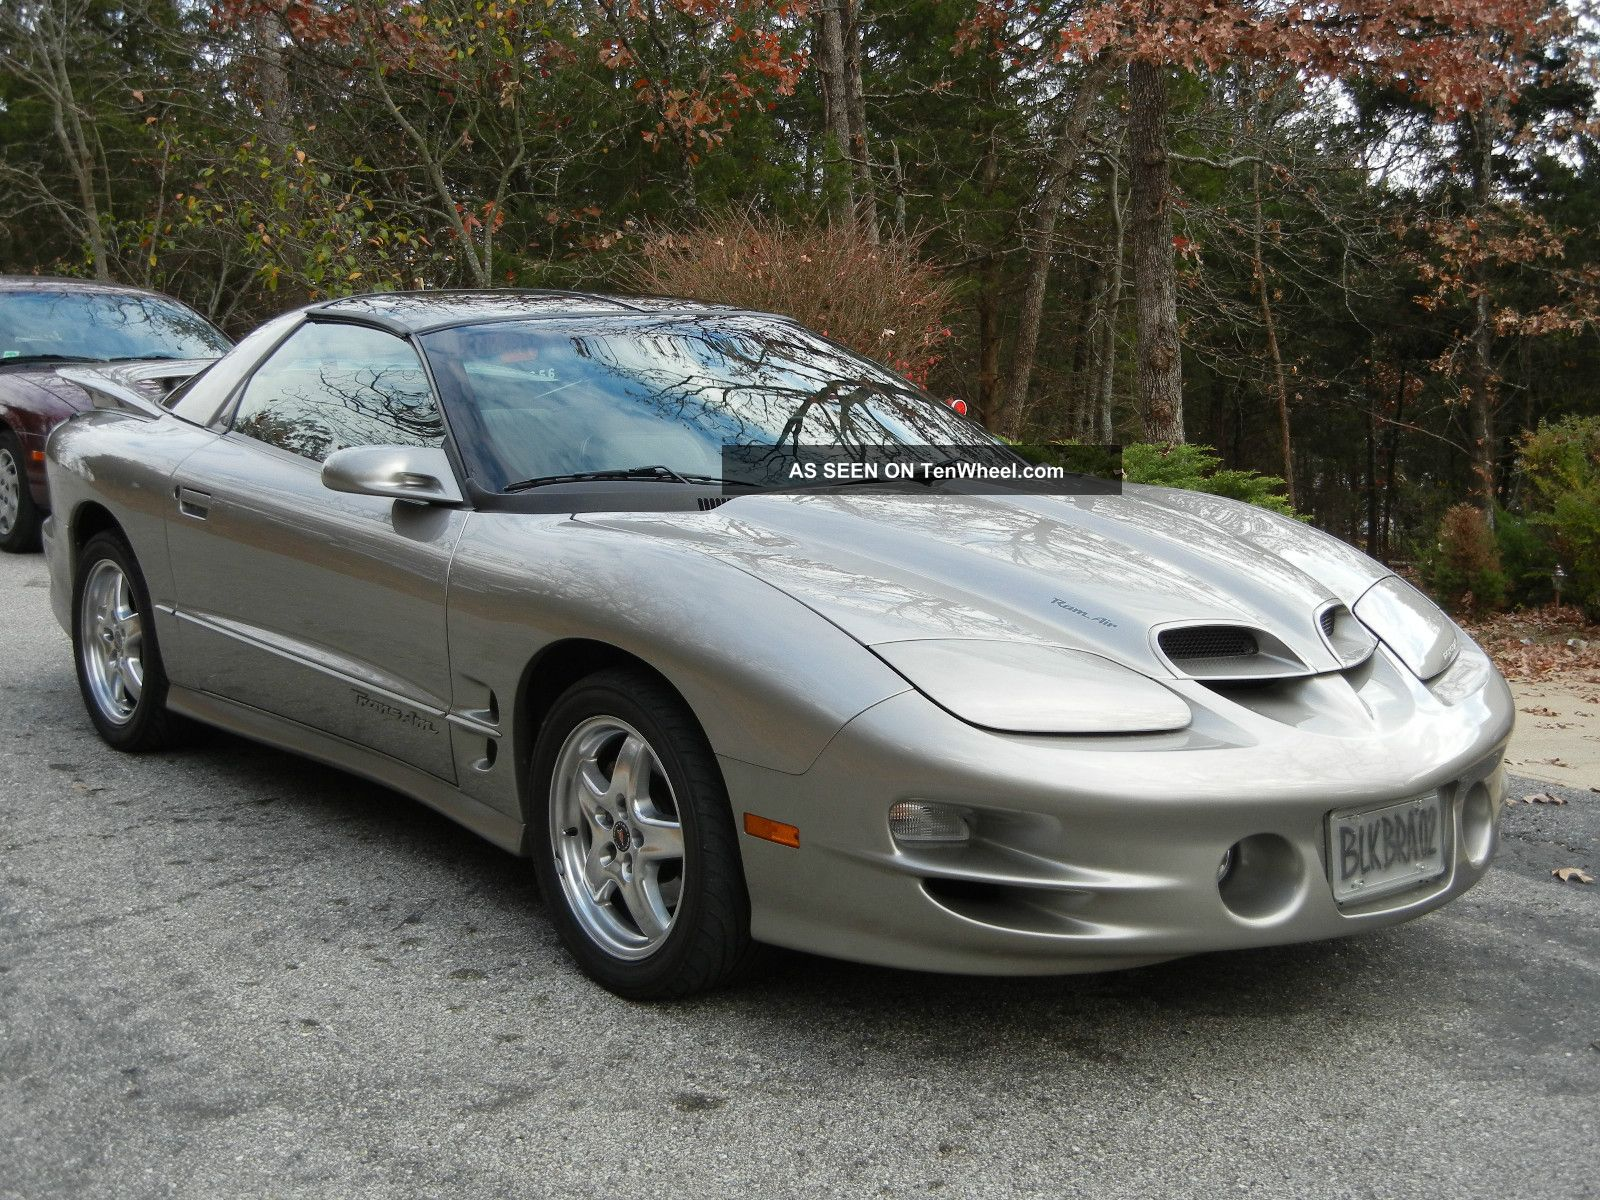 2002 pontiac firebird trans am ws6 coupe 2 door 5 7l 2nd owner adult driven. Black Bedroom Furniture Sets. Home Design Ideas